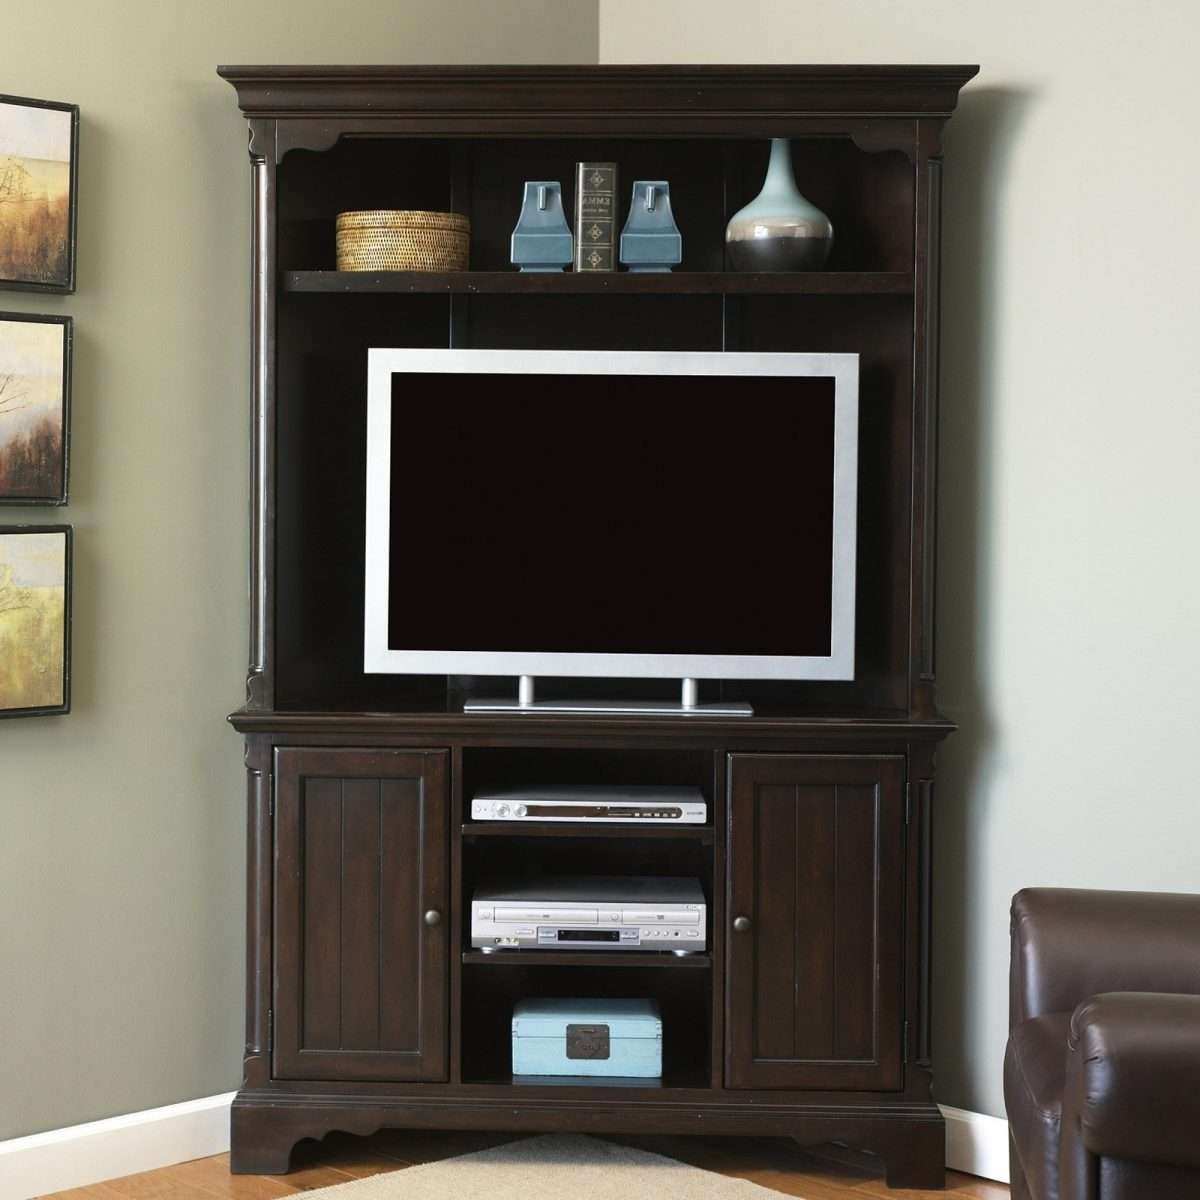 Tall Corner Tv Stand White Uniqueer Armoirec2a0 Photos Concept Regarding Corner Tv Cabinets For Flat Screens With Doors (View 19 of 20)